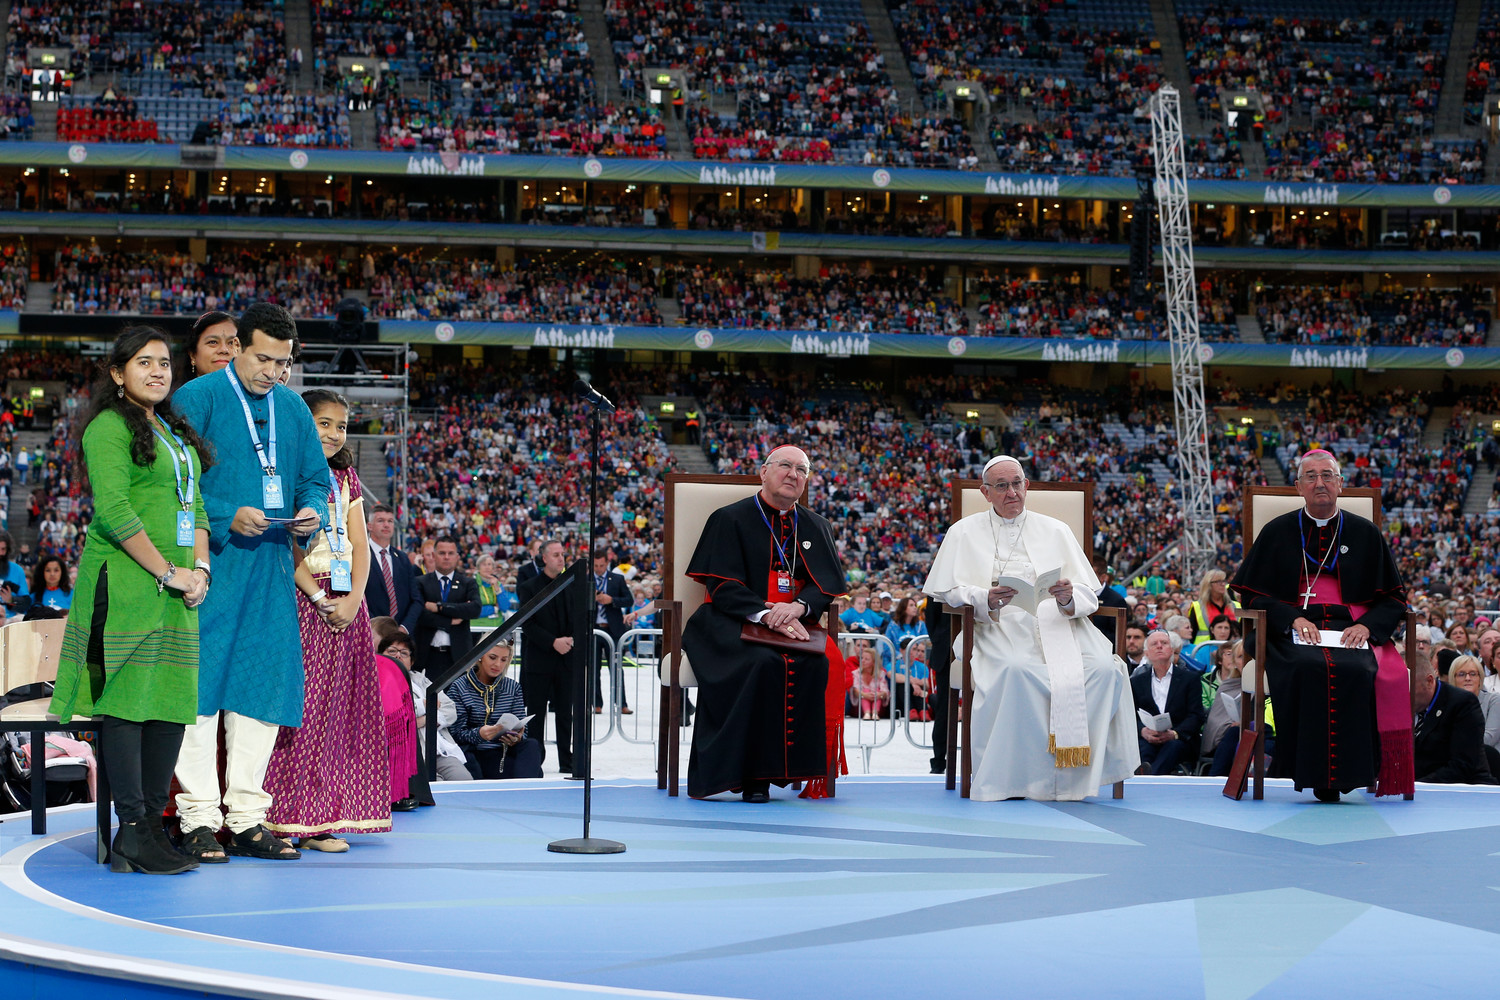 Pope Francis attends the Festival of Families in Croke Park stadium in Dublin Aug. 25.